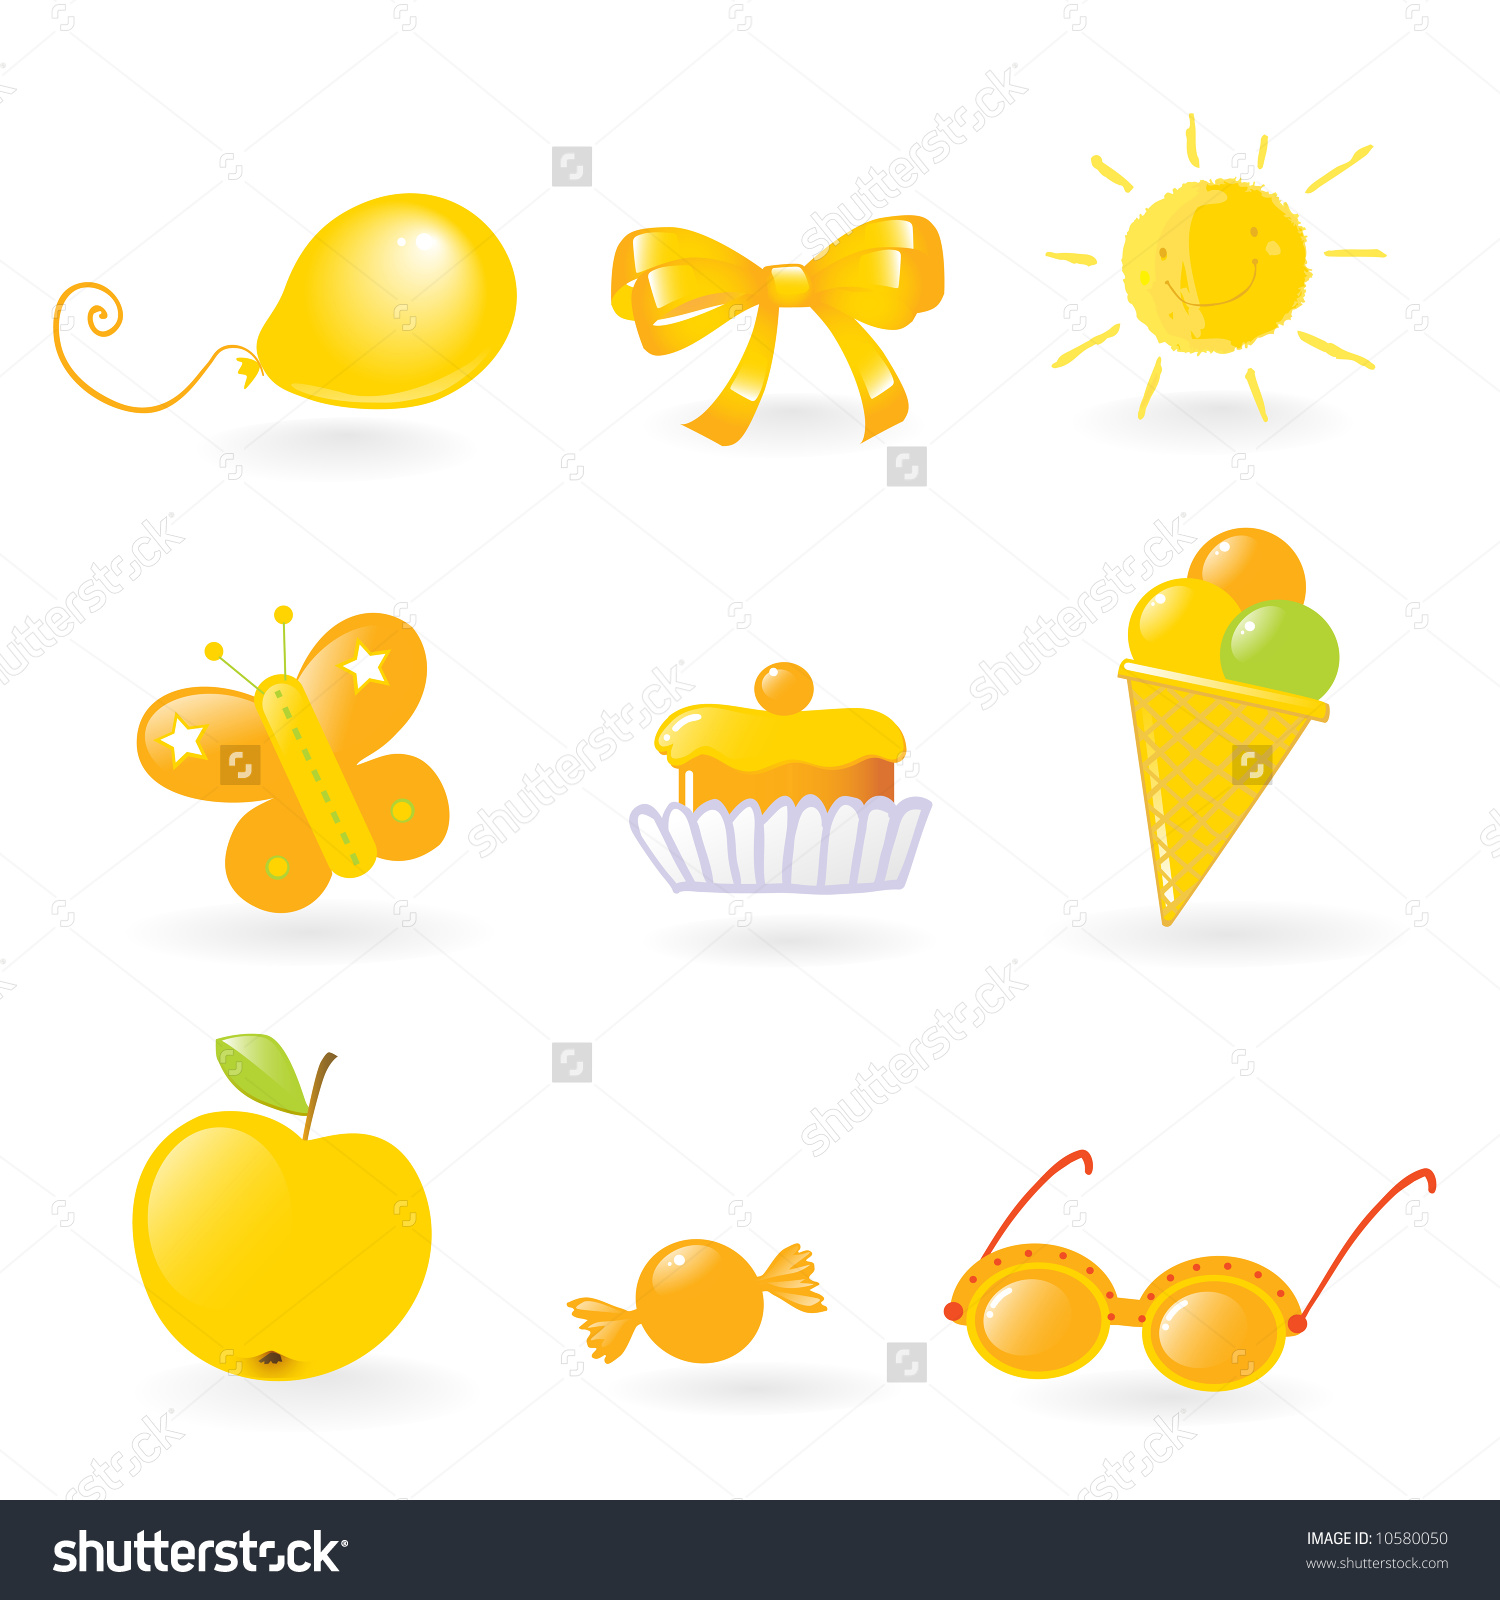 Vector Clipart Different Yellow Colored Objects Stock Vector.